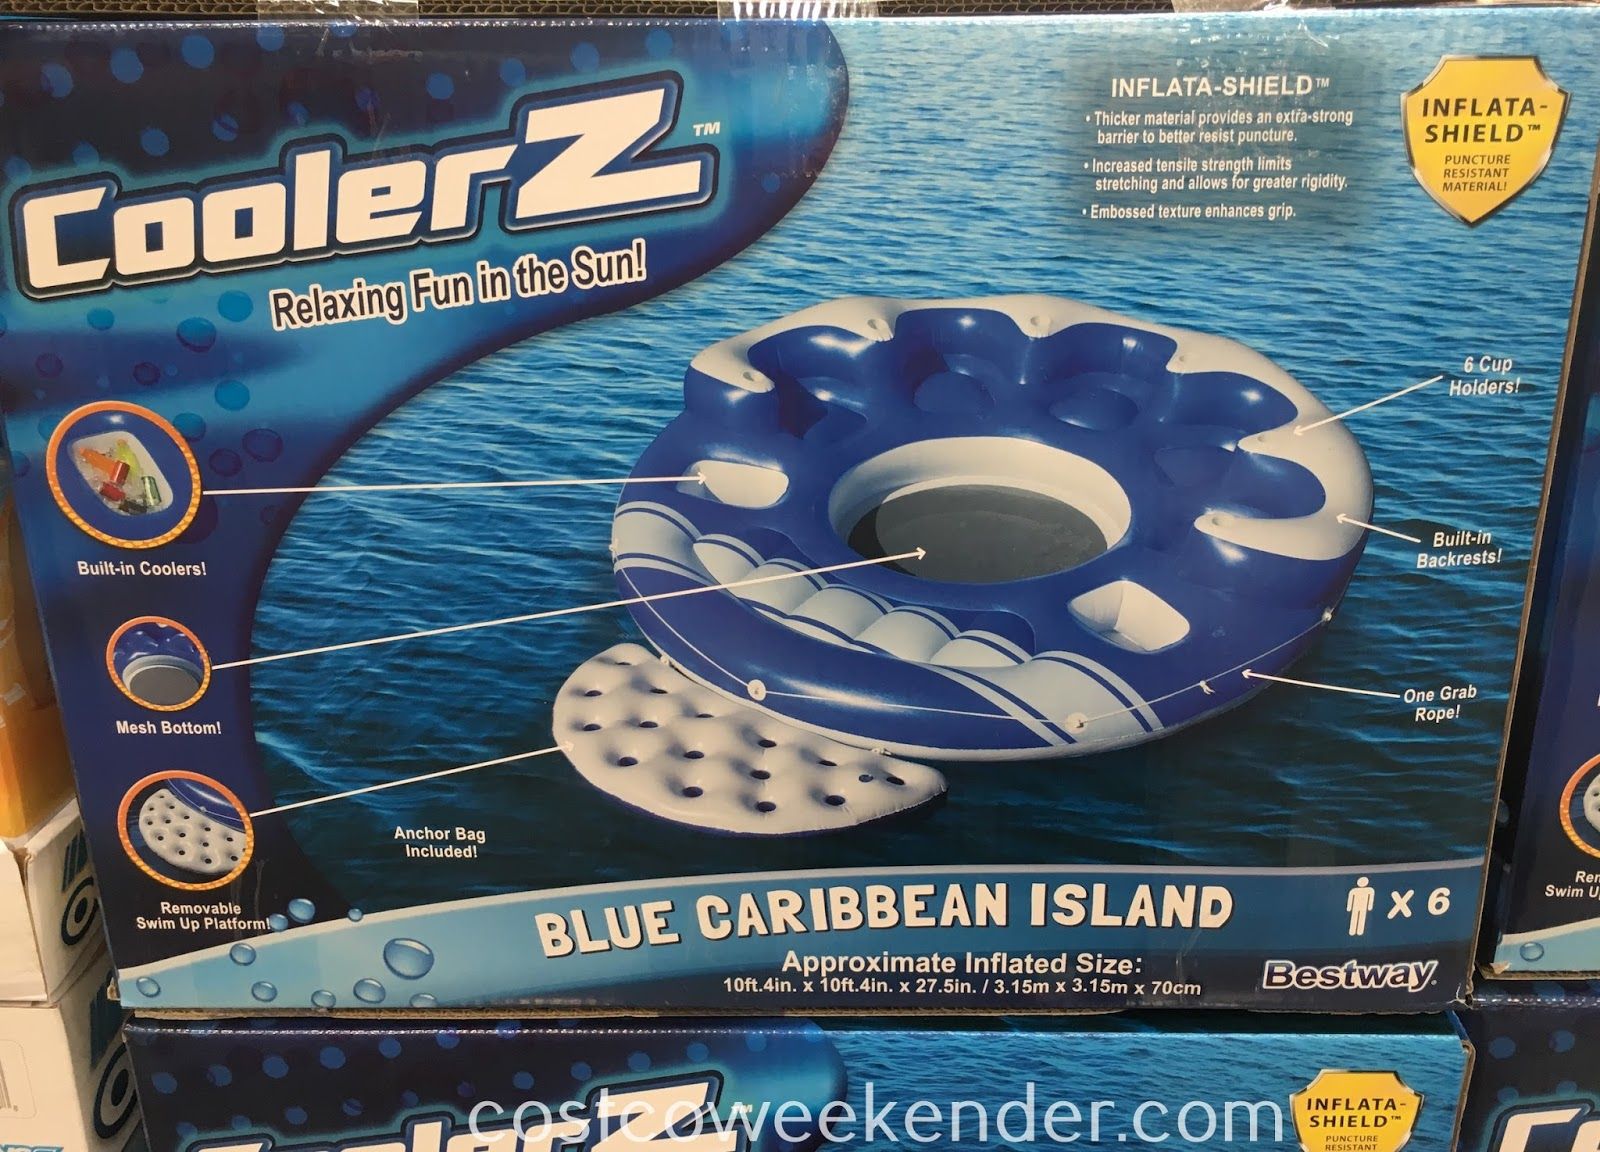 Bestway CoolerZ Blue Caribbean Island - Summer fun has never been better!